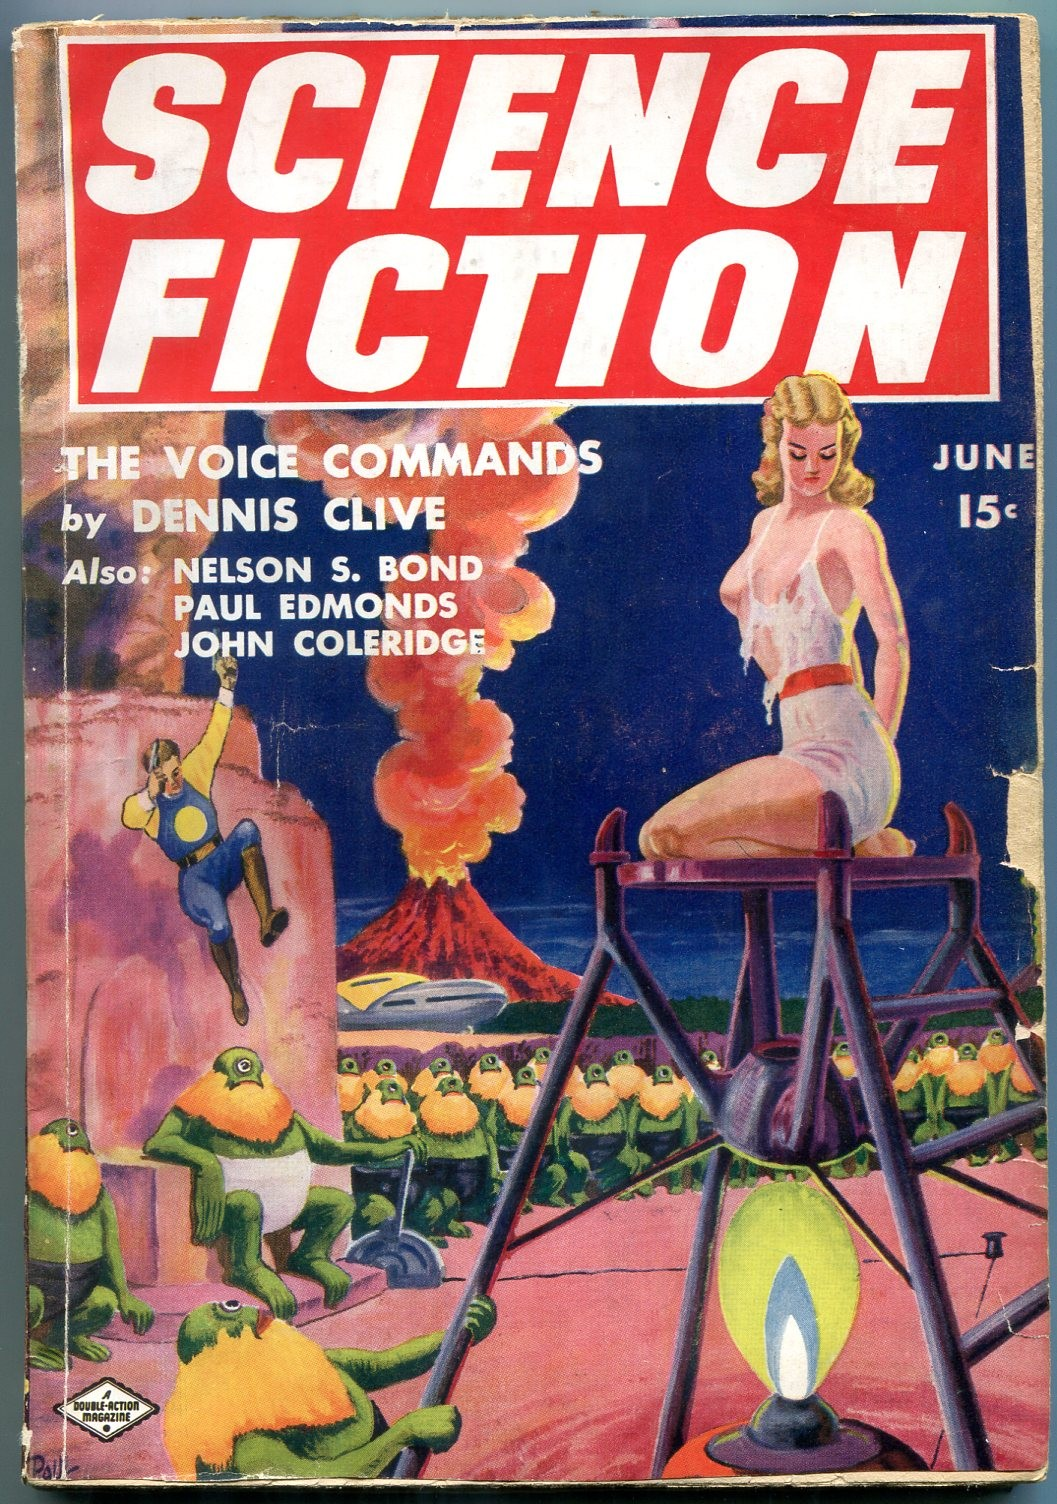 The Voice Commands · Science Fiction June 1940